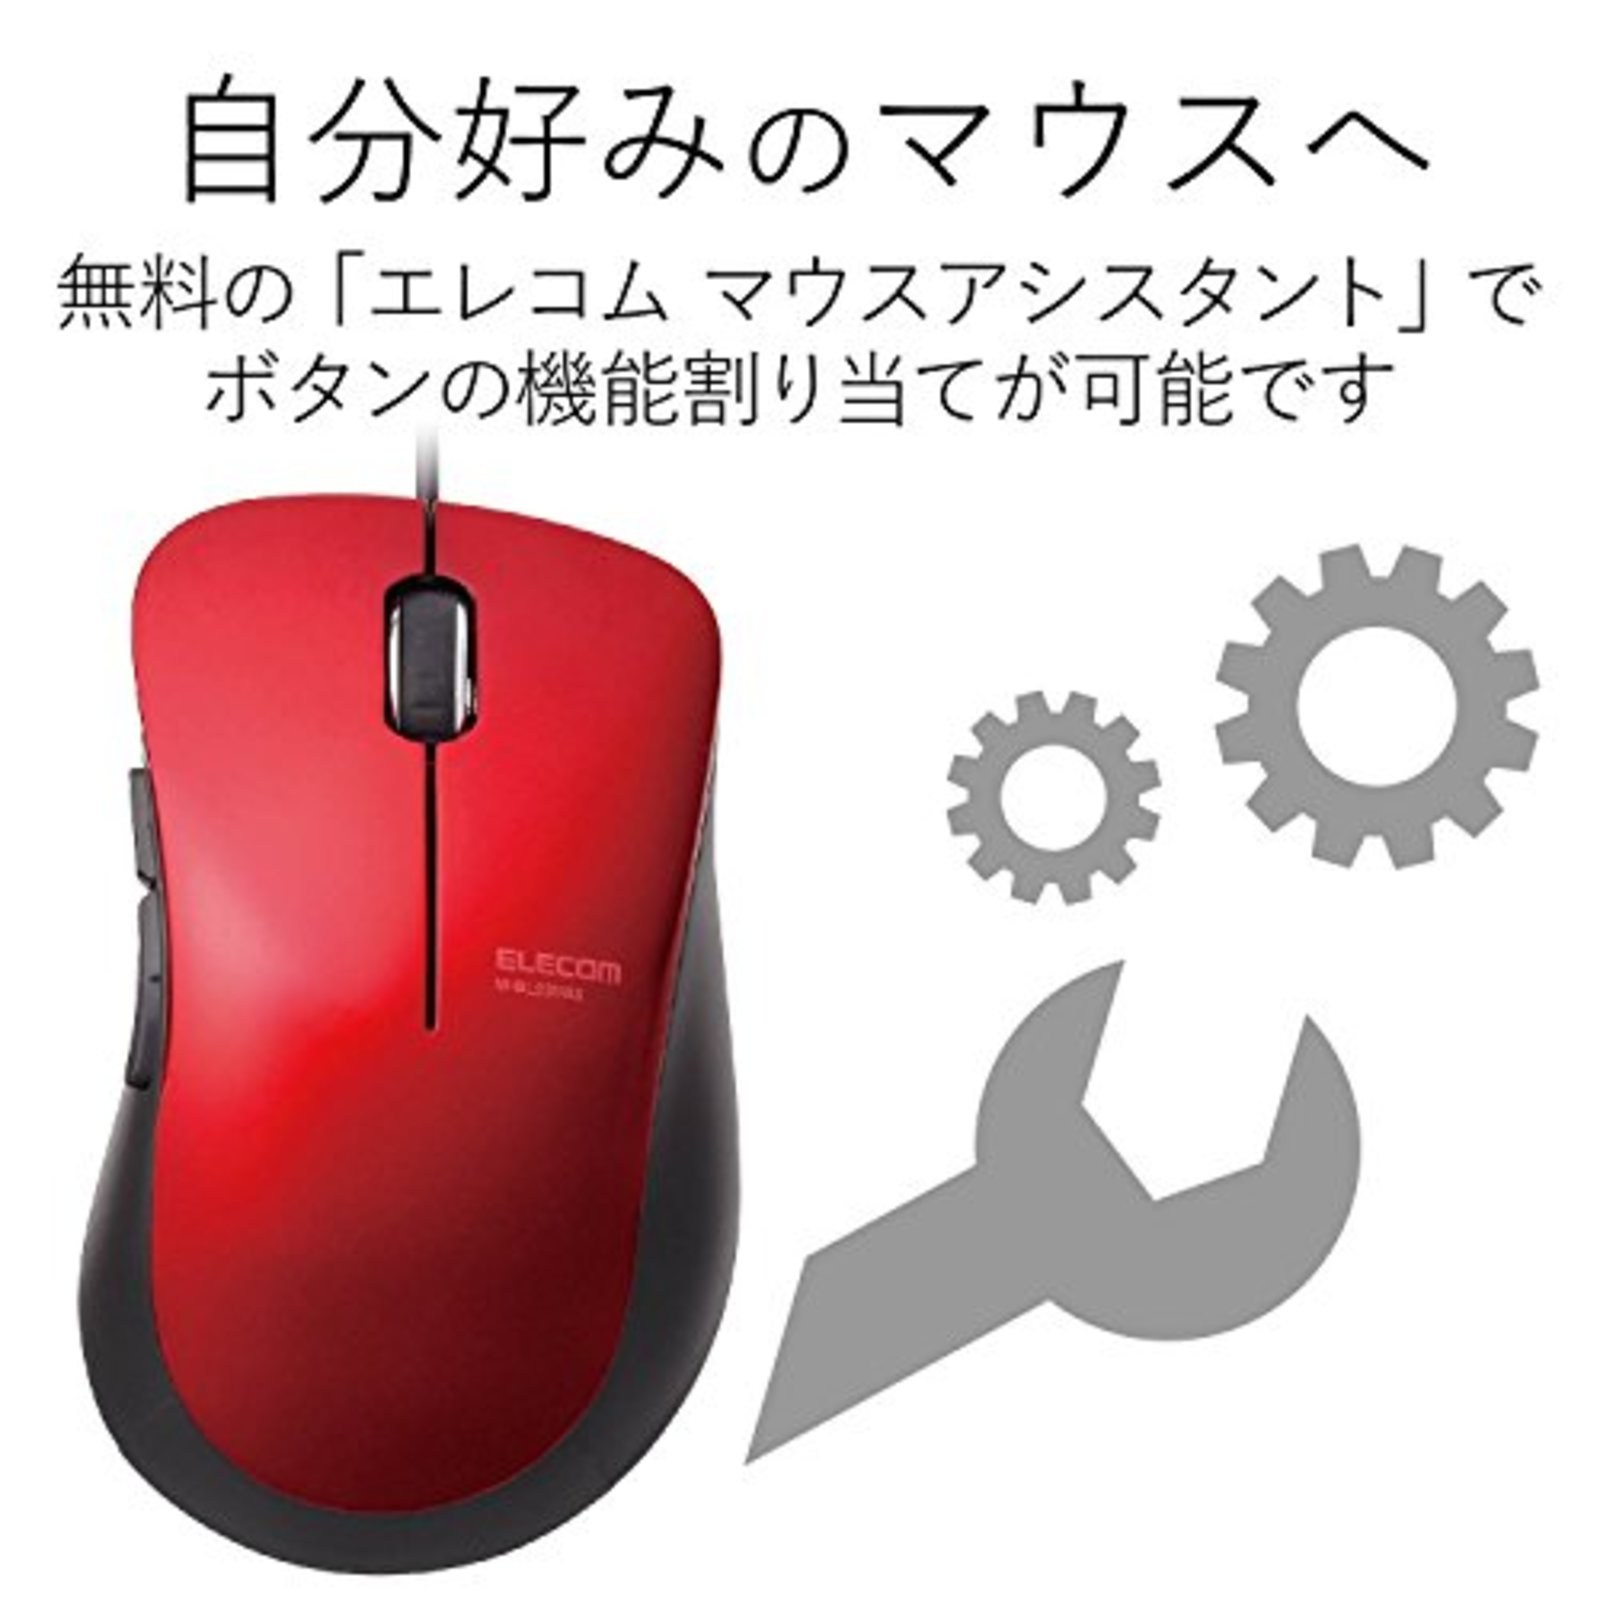 red / Blubs Series Elecom BlueLED wired mouse silent Medium Medium/